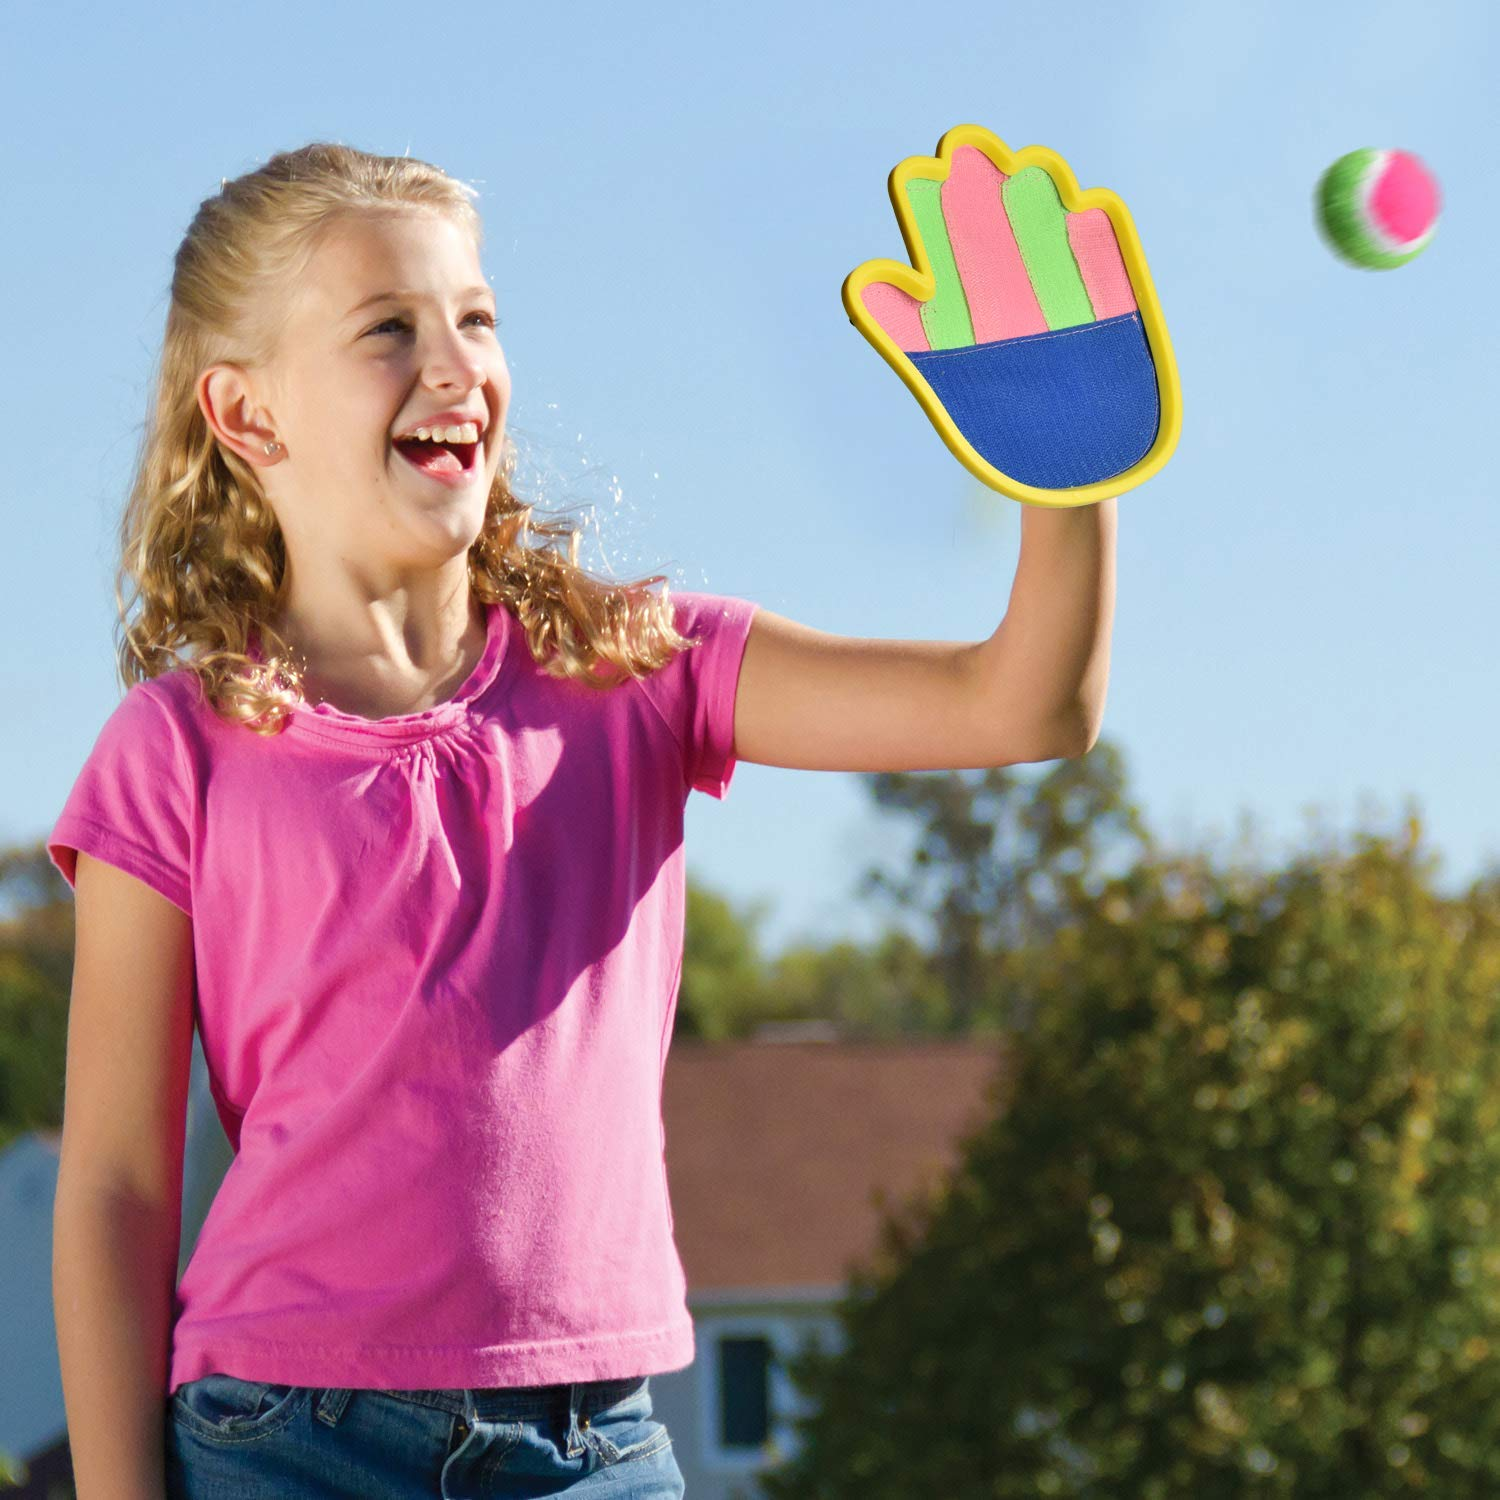 16 PCs Sports Outdoor Games Set with Scoop Ball Toss, Toss and Catch Games, Tennis Racket Sports Toy, Slingshot Rocket Copters Water Toys for Kids by FUN LITTLE TOYS (Image #5)